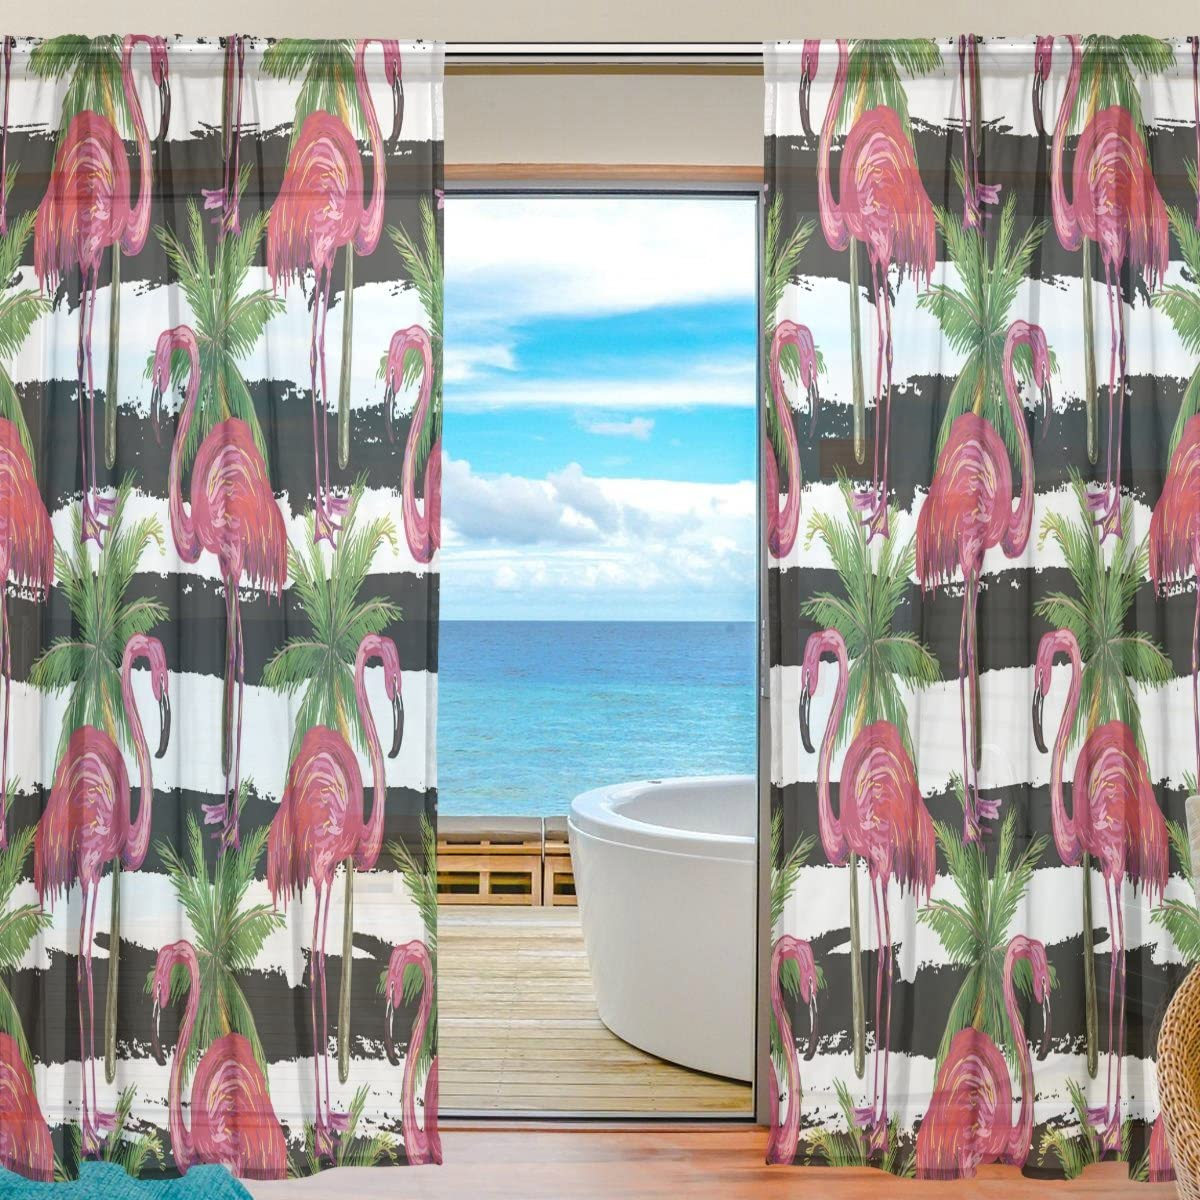 Oreayn Tropical Flamingo Black and White Striped Sheer Curtain 84 Inches Long by 55 Inches Wide,Flamingo Curtain for Living Room Bedroom Set of 2 Panels,Rod Pocket,Polyester Fabric